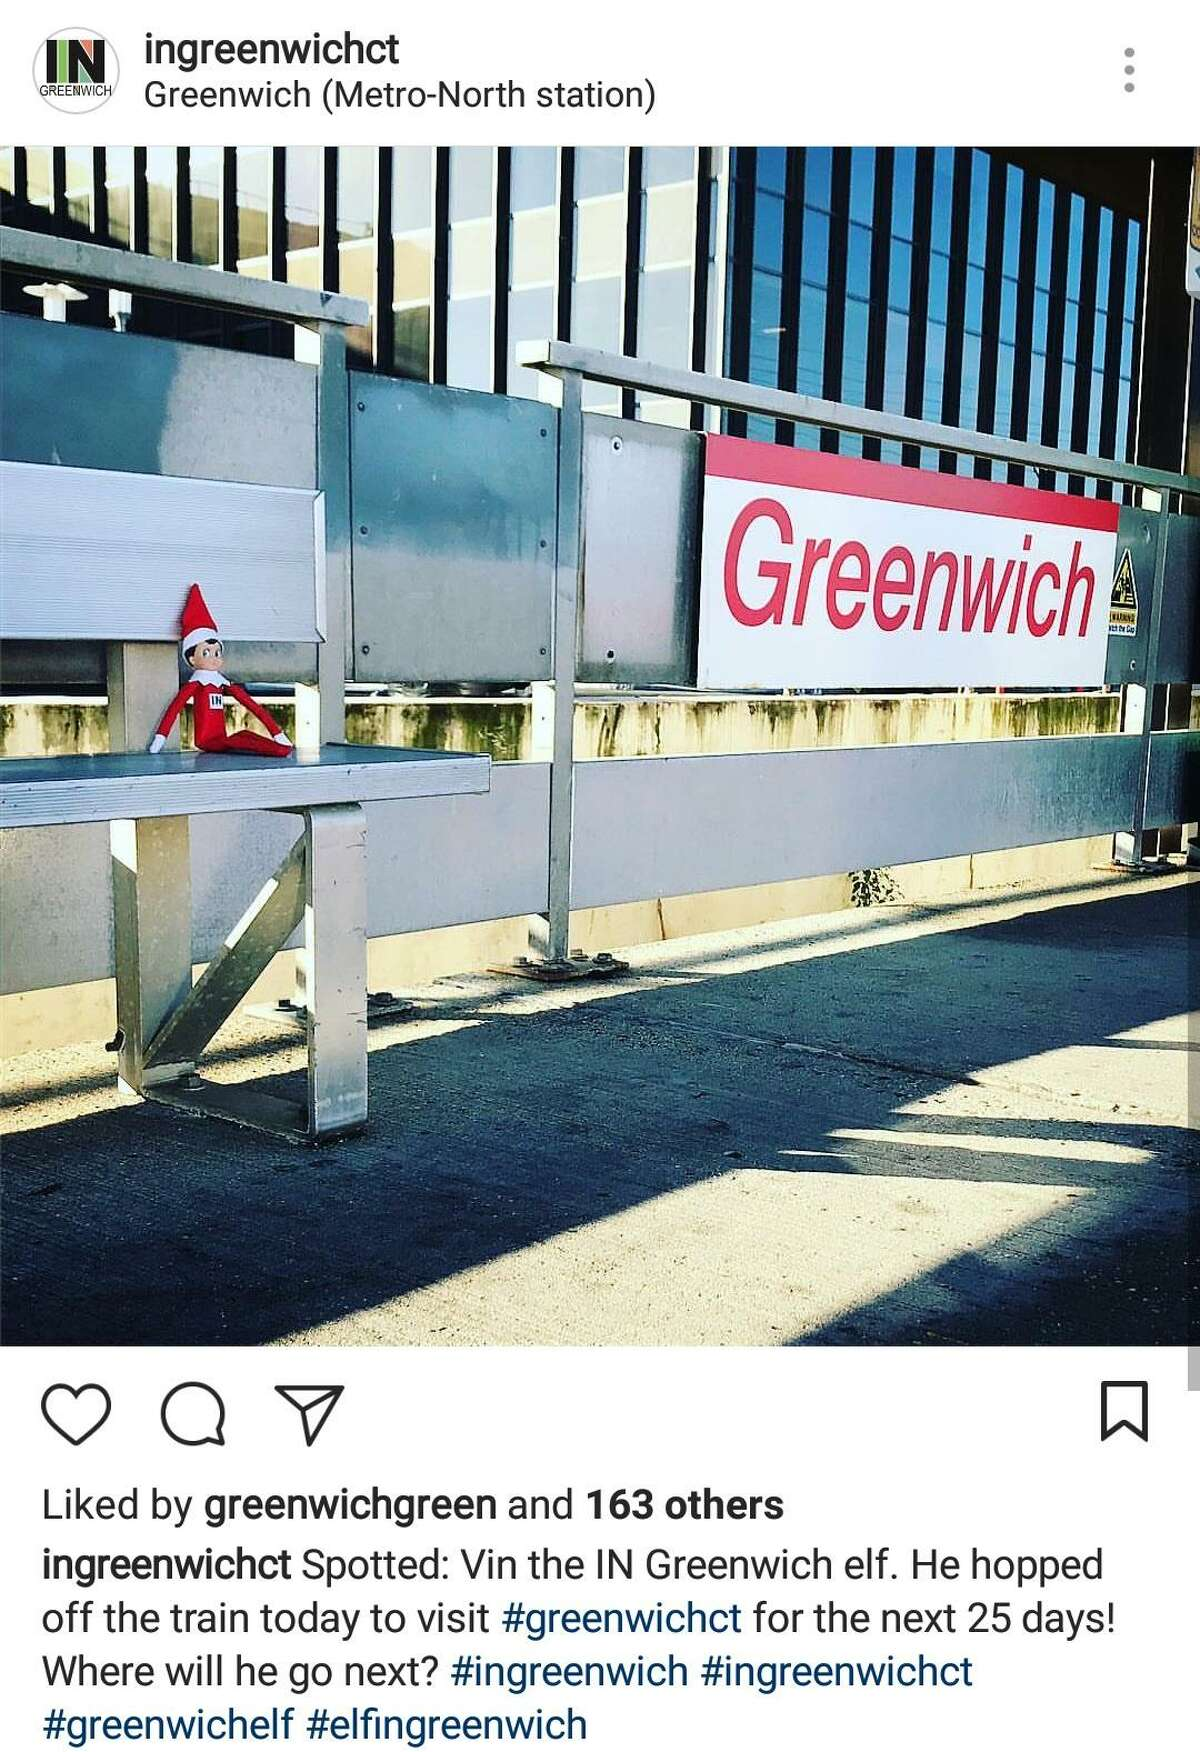 Vin the IN Greenwich elf arrived at the Greenwich train station on Dec. 1, 2017. He has been taking photos with various people, in various places, and with different organizations and nonprofits during the holiday season.